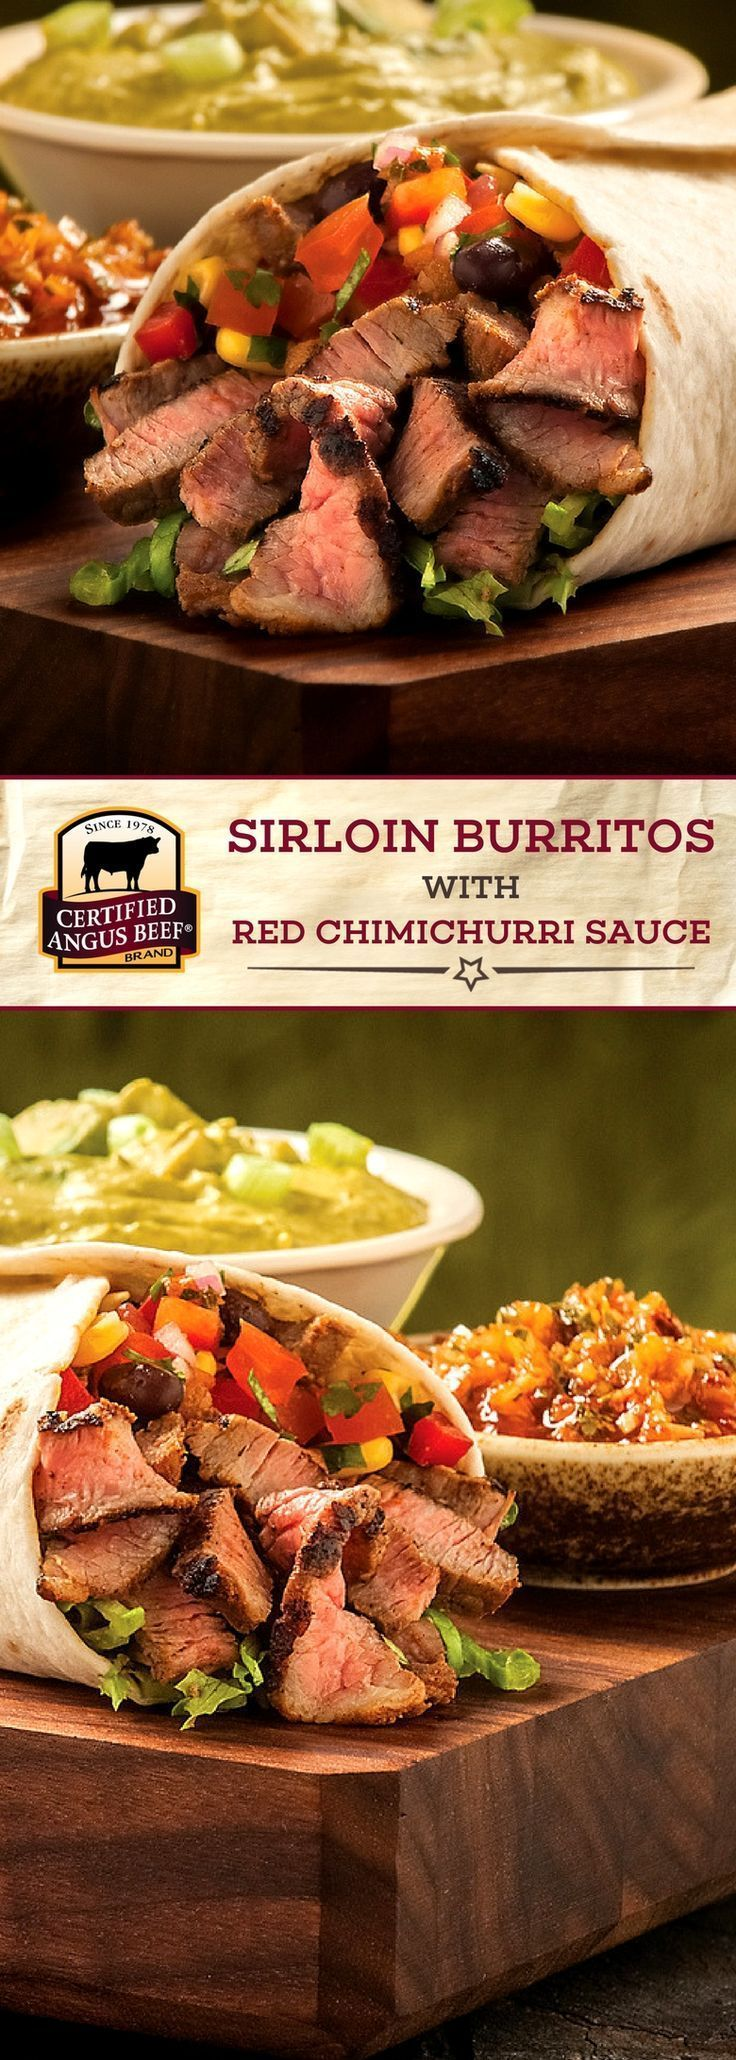 Certified Angus Beef®️️️️️️️ brand Sirloin Burritos with Red Chimichurri Sauce use the best sirloin or skirt steak and a blend of tasty spices for a DELICIOUS burrito recipe! Fresh cilantro, smoked paprika, and red pepper flakes add so much depth to this BEEF recipe. Top with beans, sour cream, shredded chees and guacamole for an IRRESISTIBLE dish!  #bestangusbeef #certifiedangusbeef #beefrecipe #easyrecipes #tacotuesday